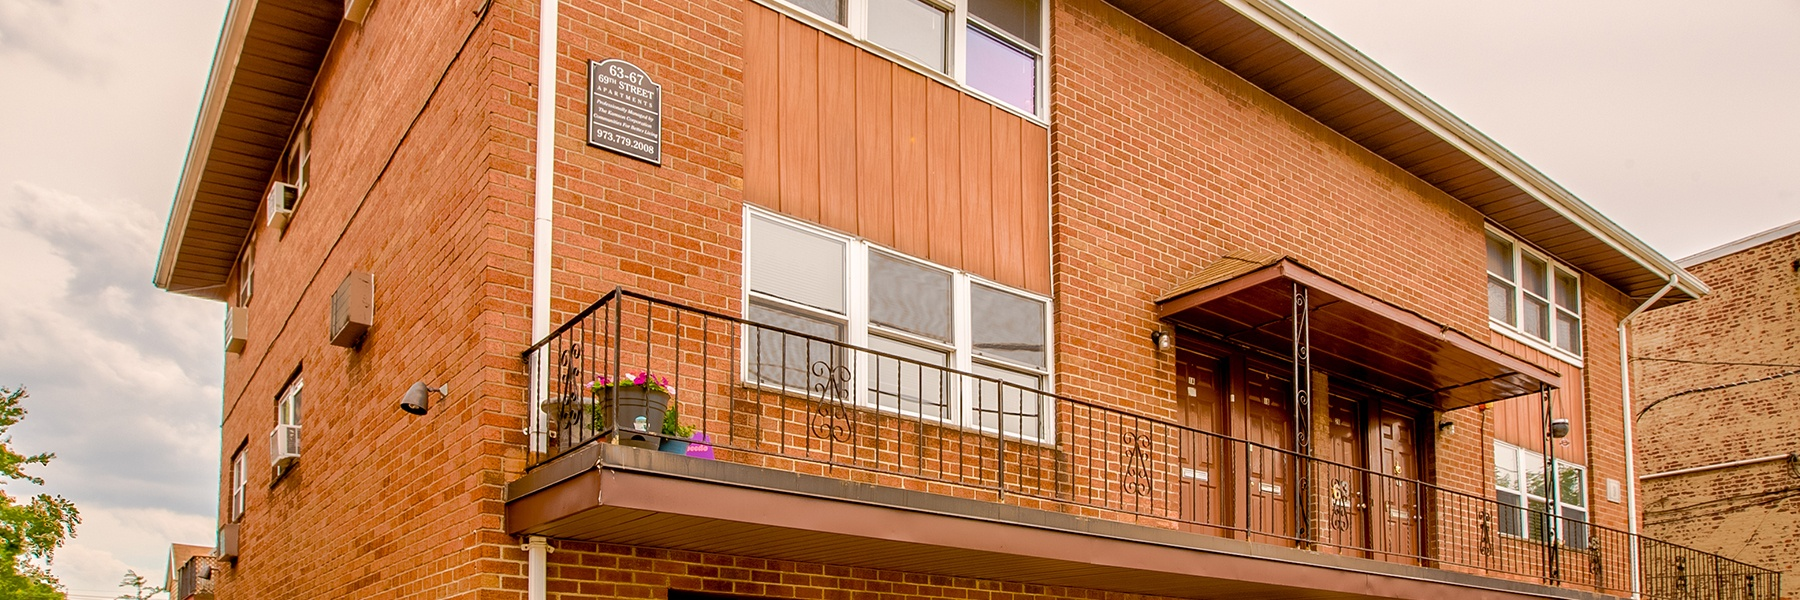 69th Street Apartments For Rent in Guttenberg, NJ Building View